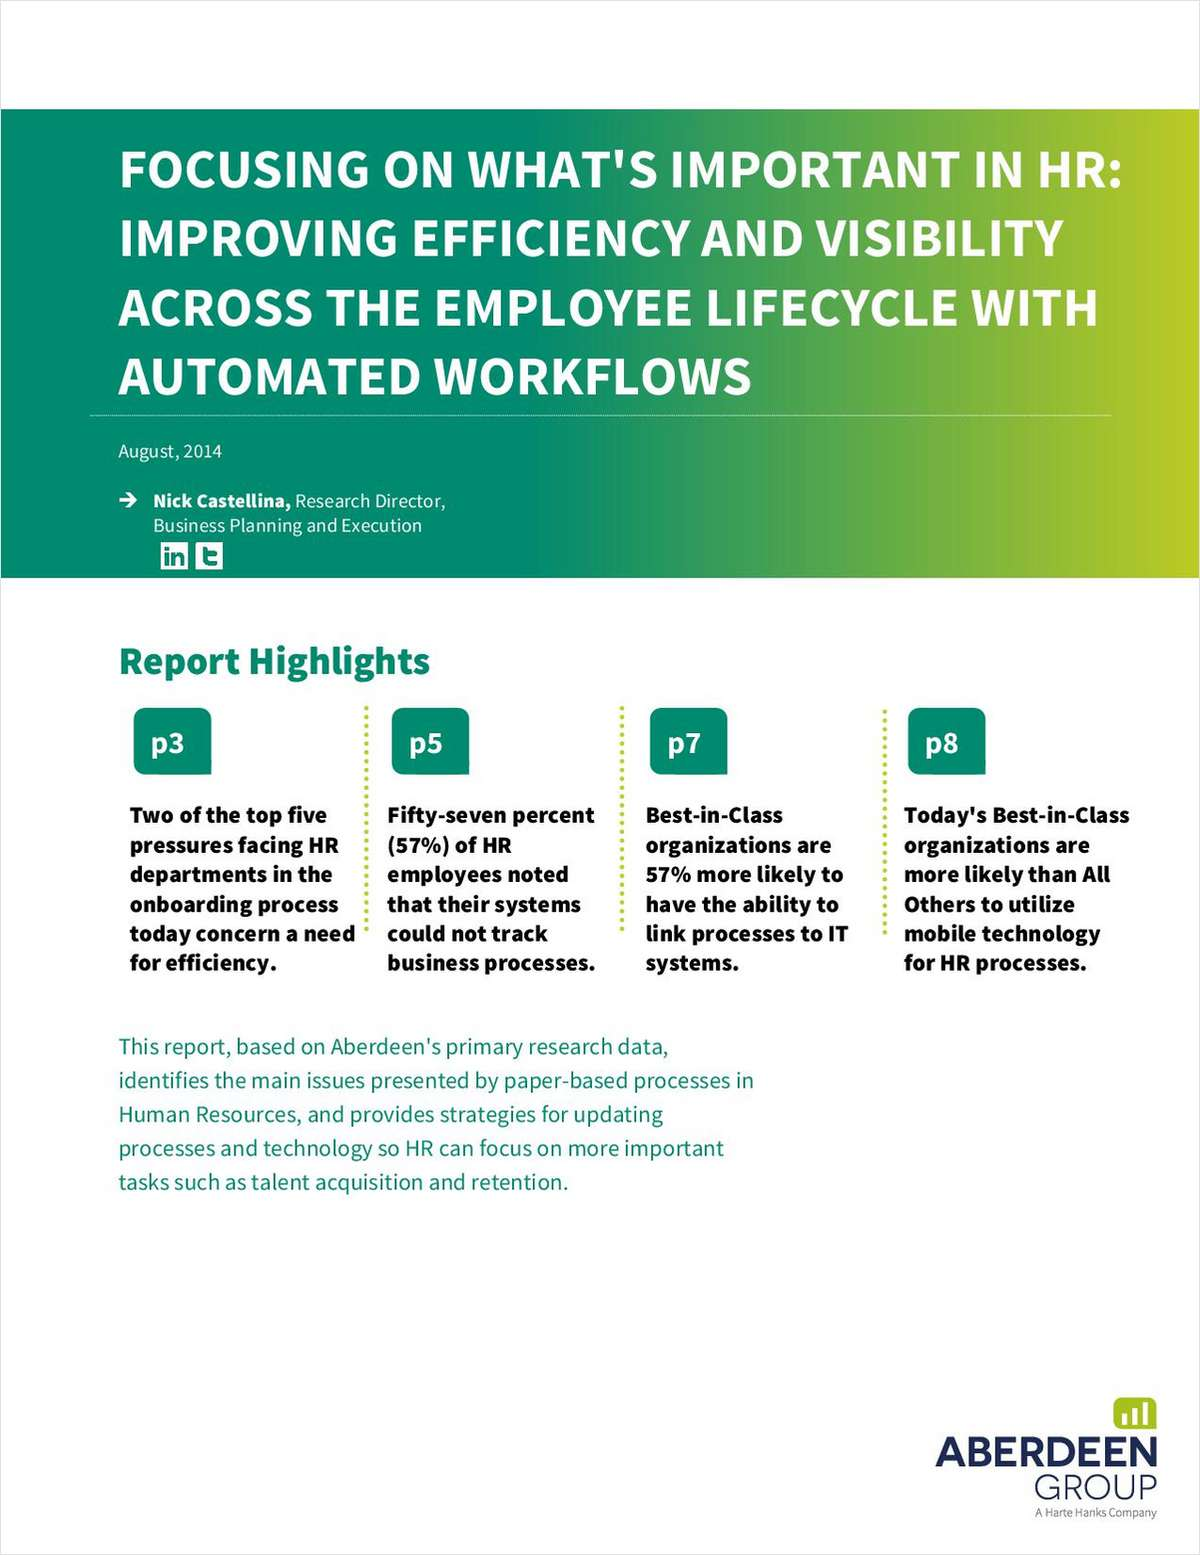 Focusing on What's Important in HR: Improving Efficiency and Visibility Across the Employee Lifecycle with Automated Workflows